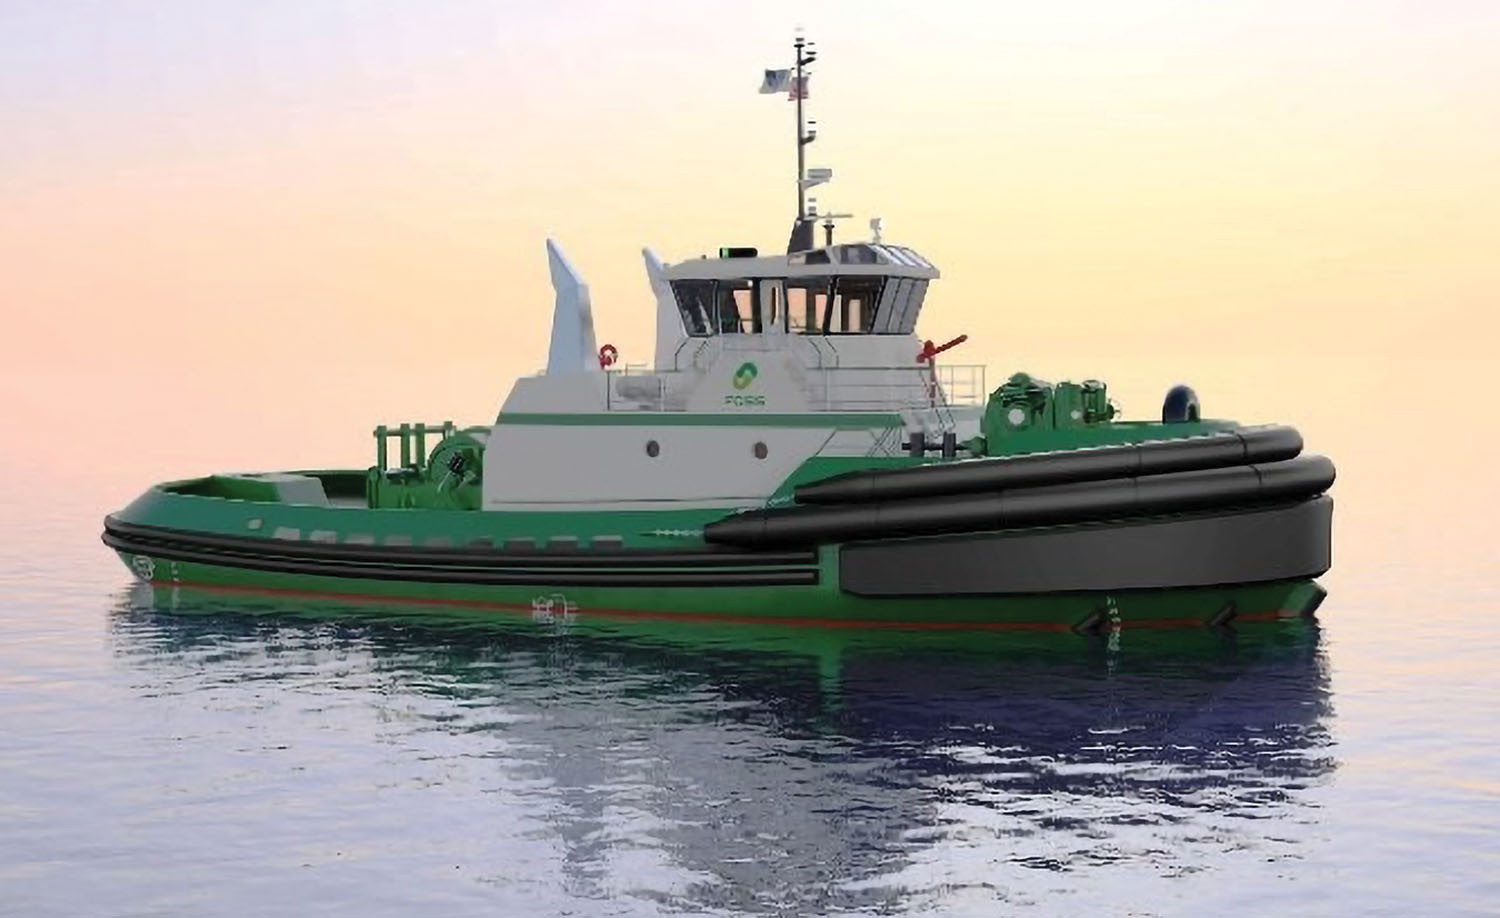 Z-drive tugs are being constructed by Nichols Brothers Boat Builders.